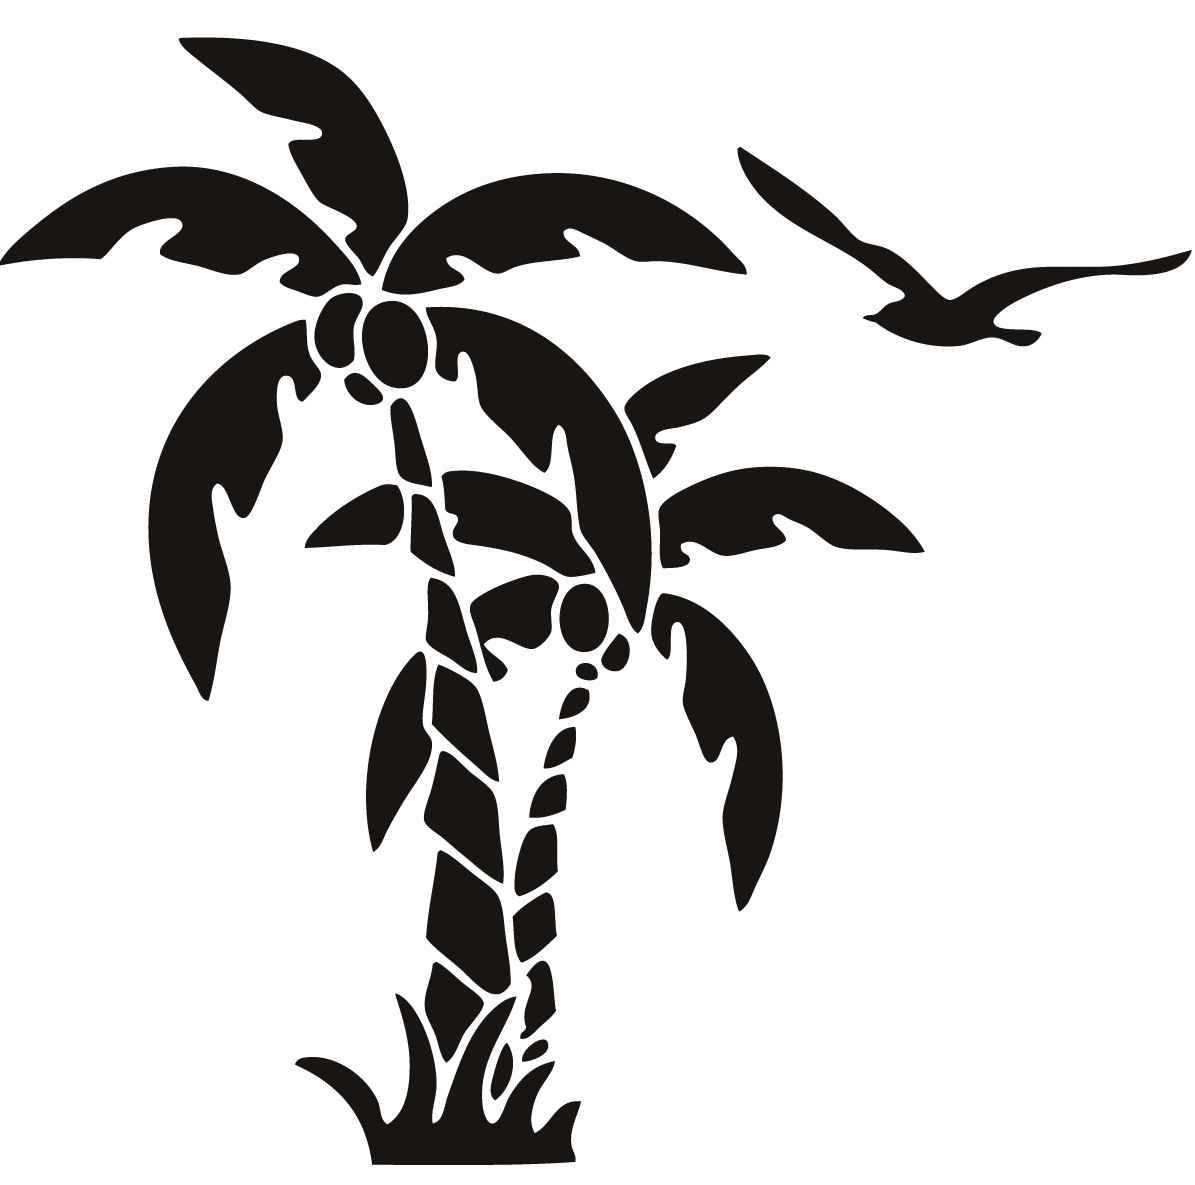 1195x1185 Palm Tree Scal Svg Palm Trees Palm, Silhouettes